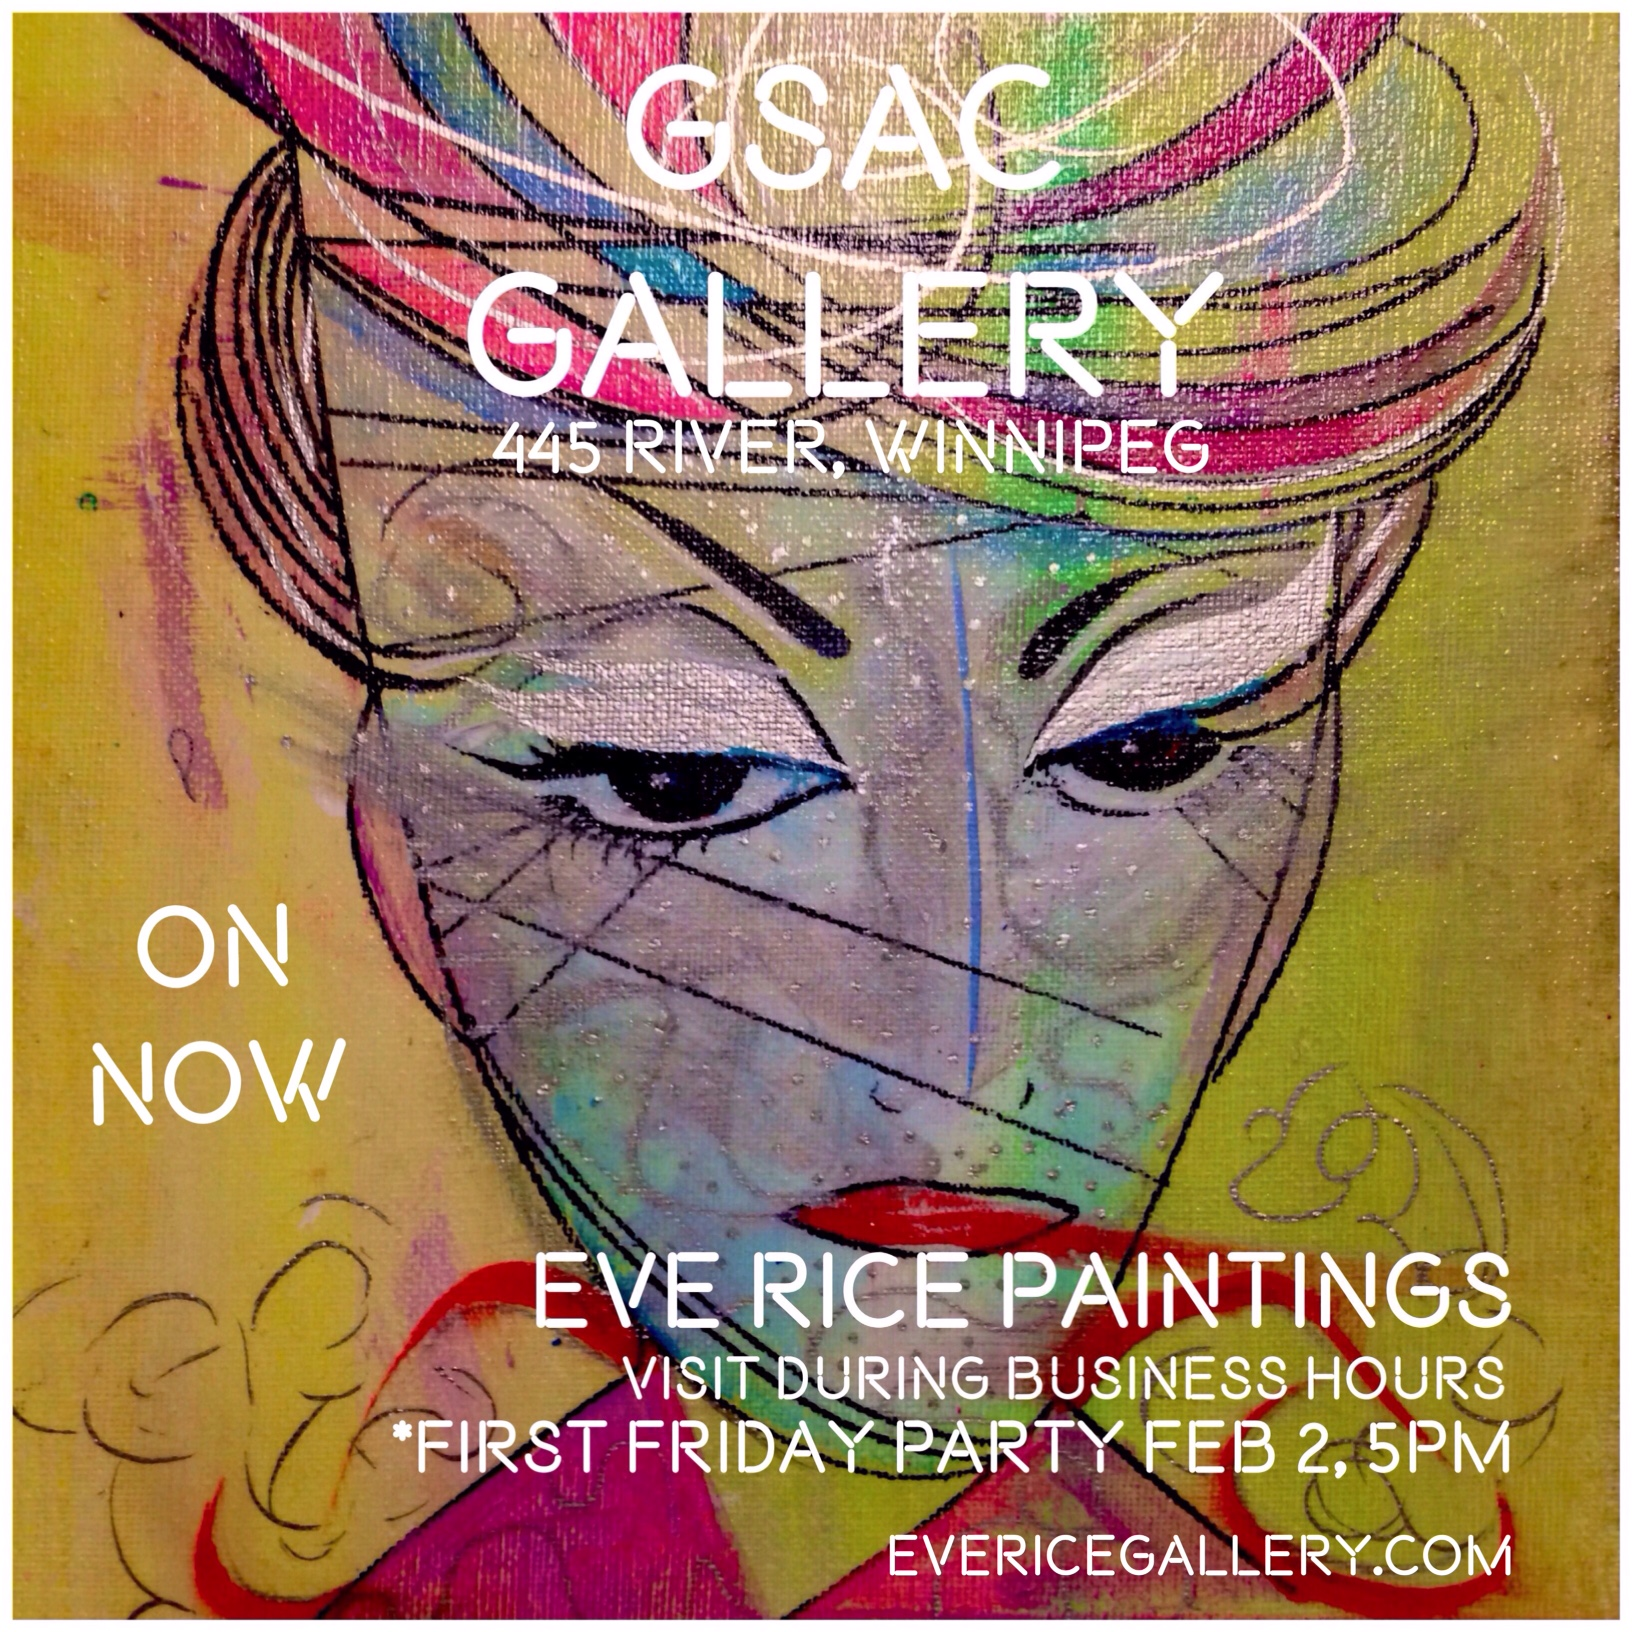 ON NOW until Feb 28/18 at Gas Station Arts Center - opening party, first friday Feb 2/18